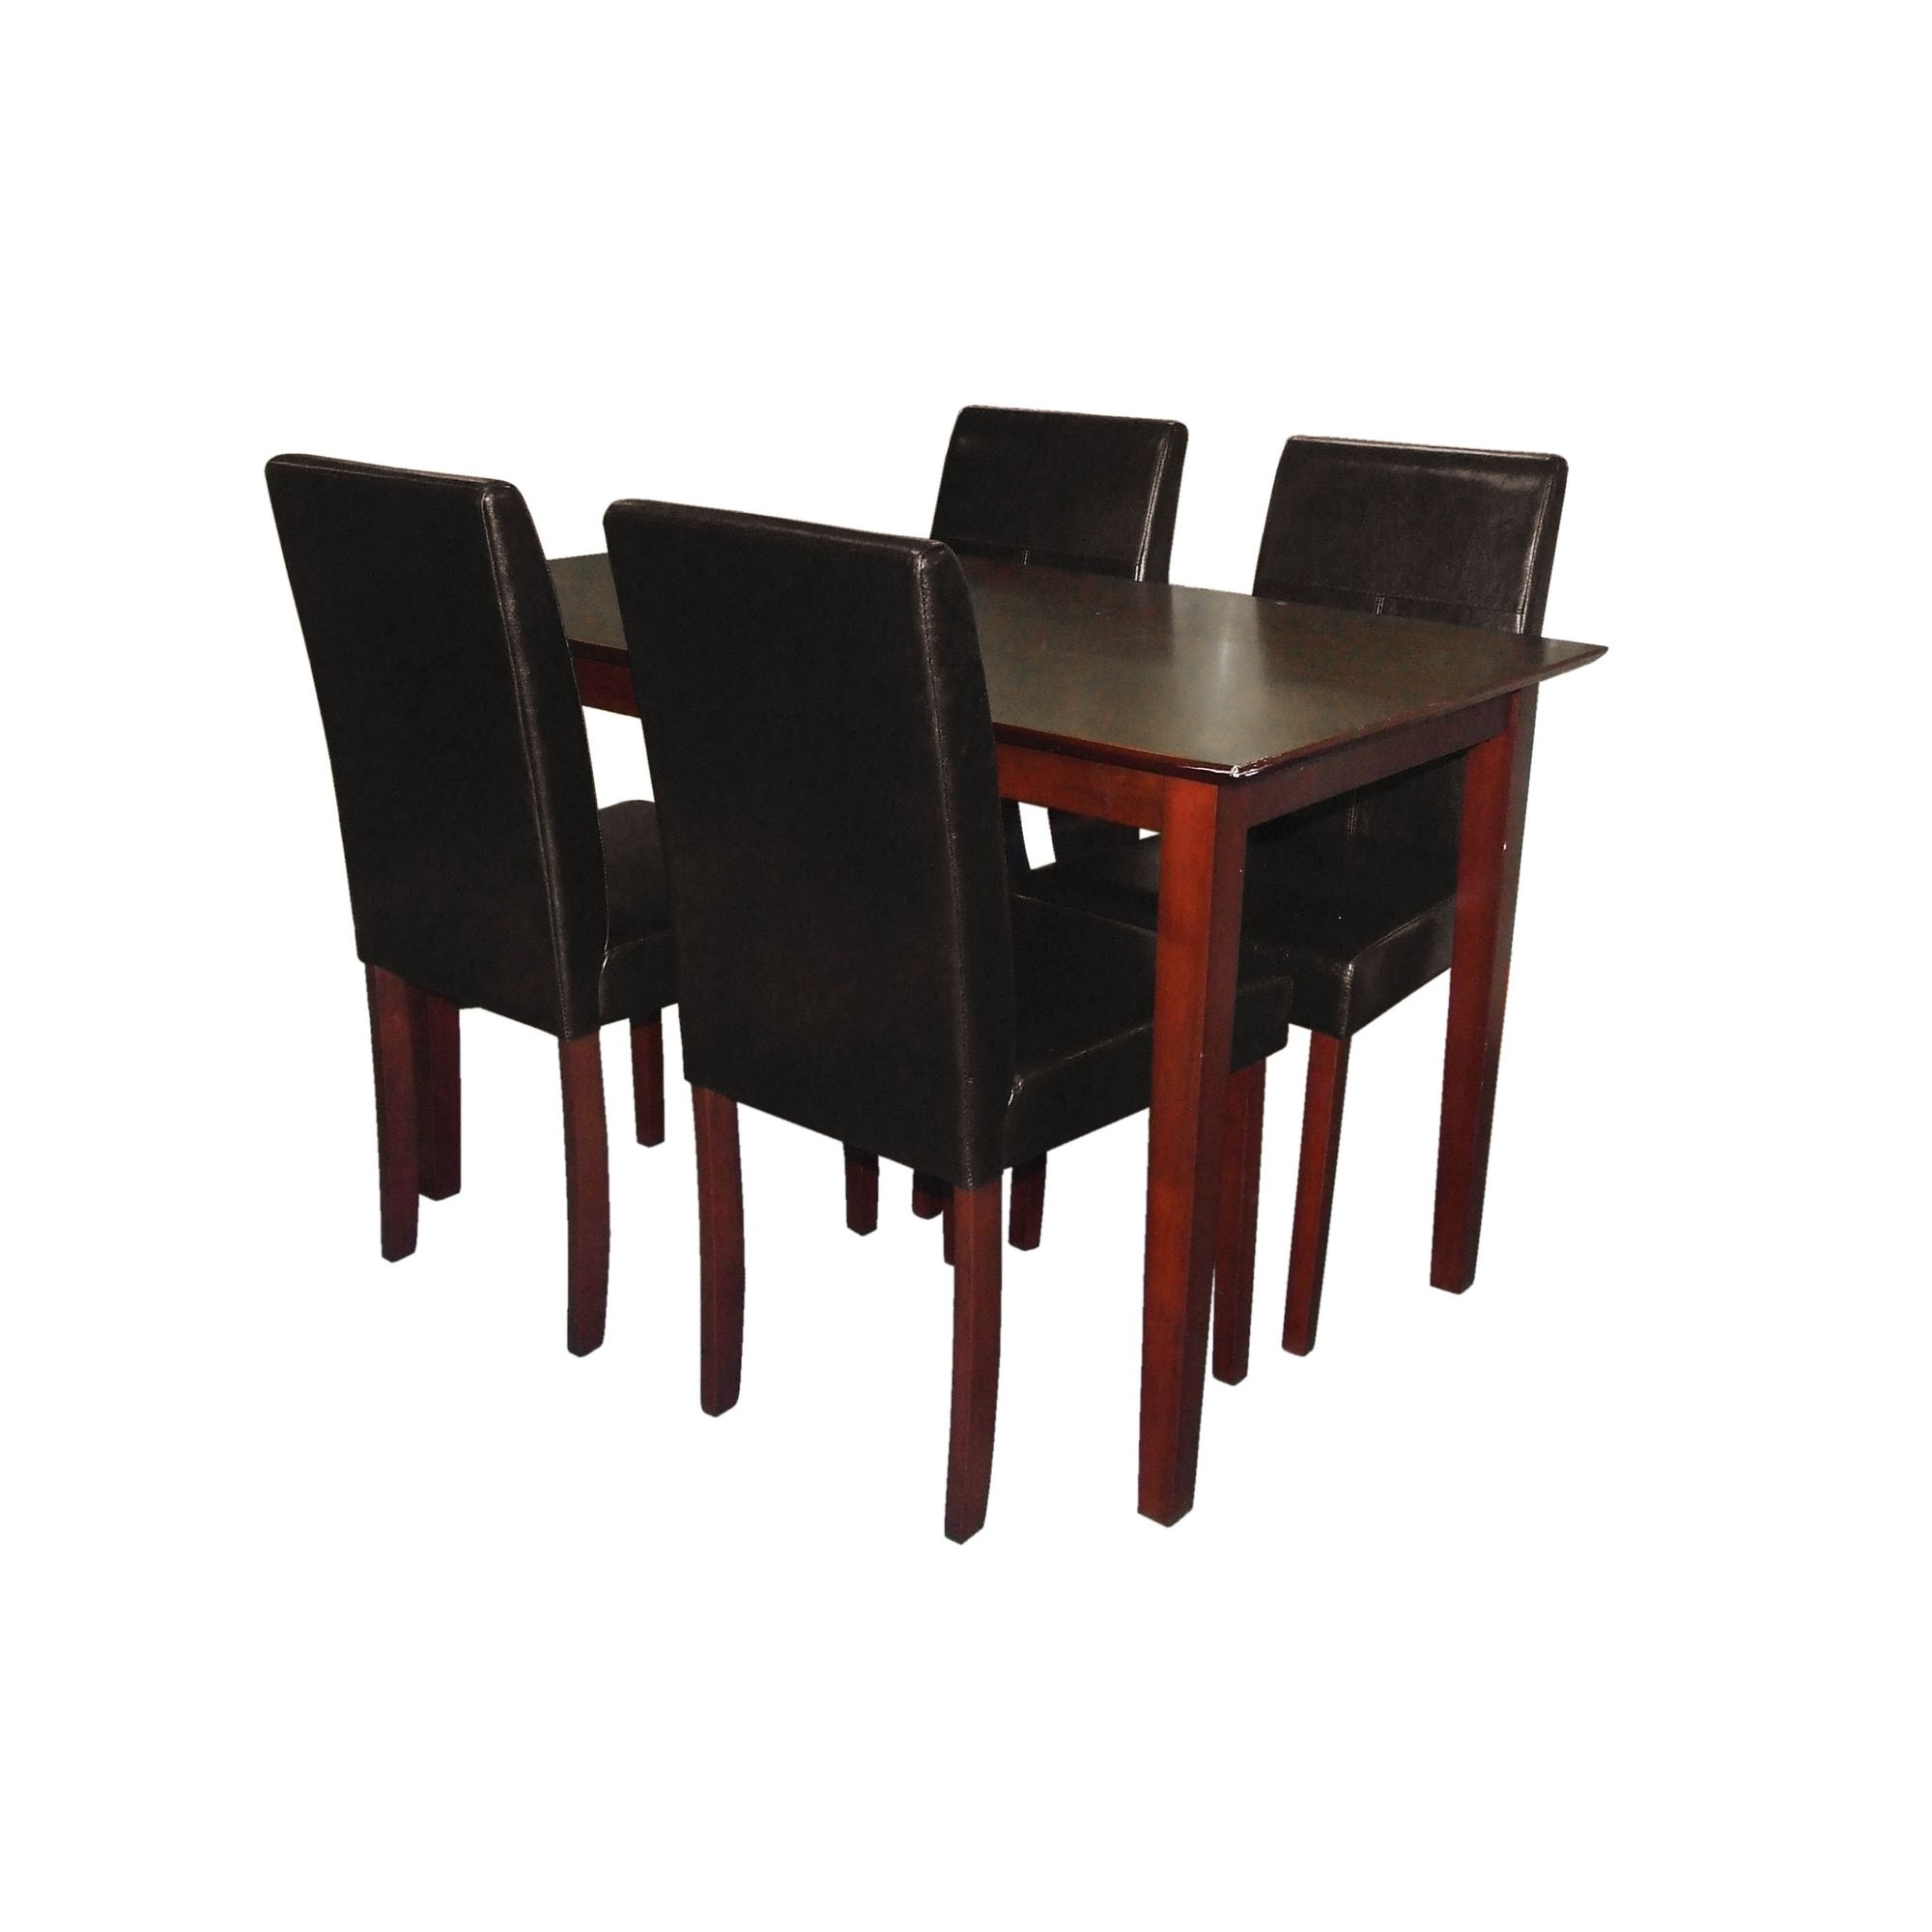 Premier Housewares 5 Piece Dining Set - Brown at Tesco Direct